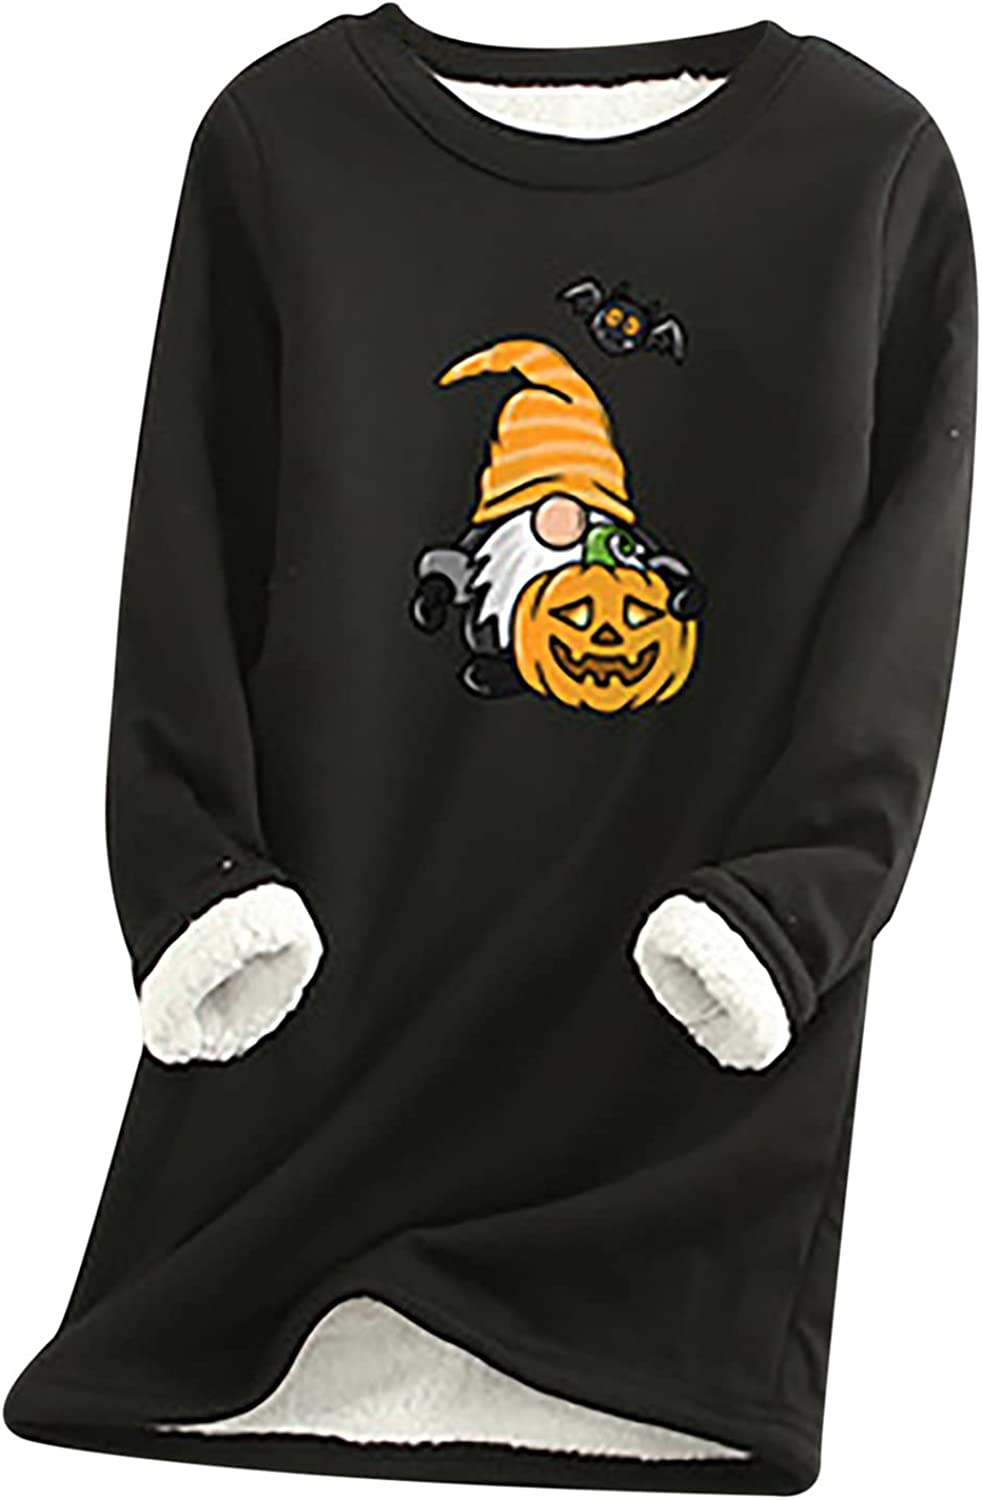 Halloween Tunic Sweater for Womens Cute Car Cat Printed Long Sleeve Fleece Lined Warm Sweatershirt Nightgowns